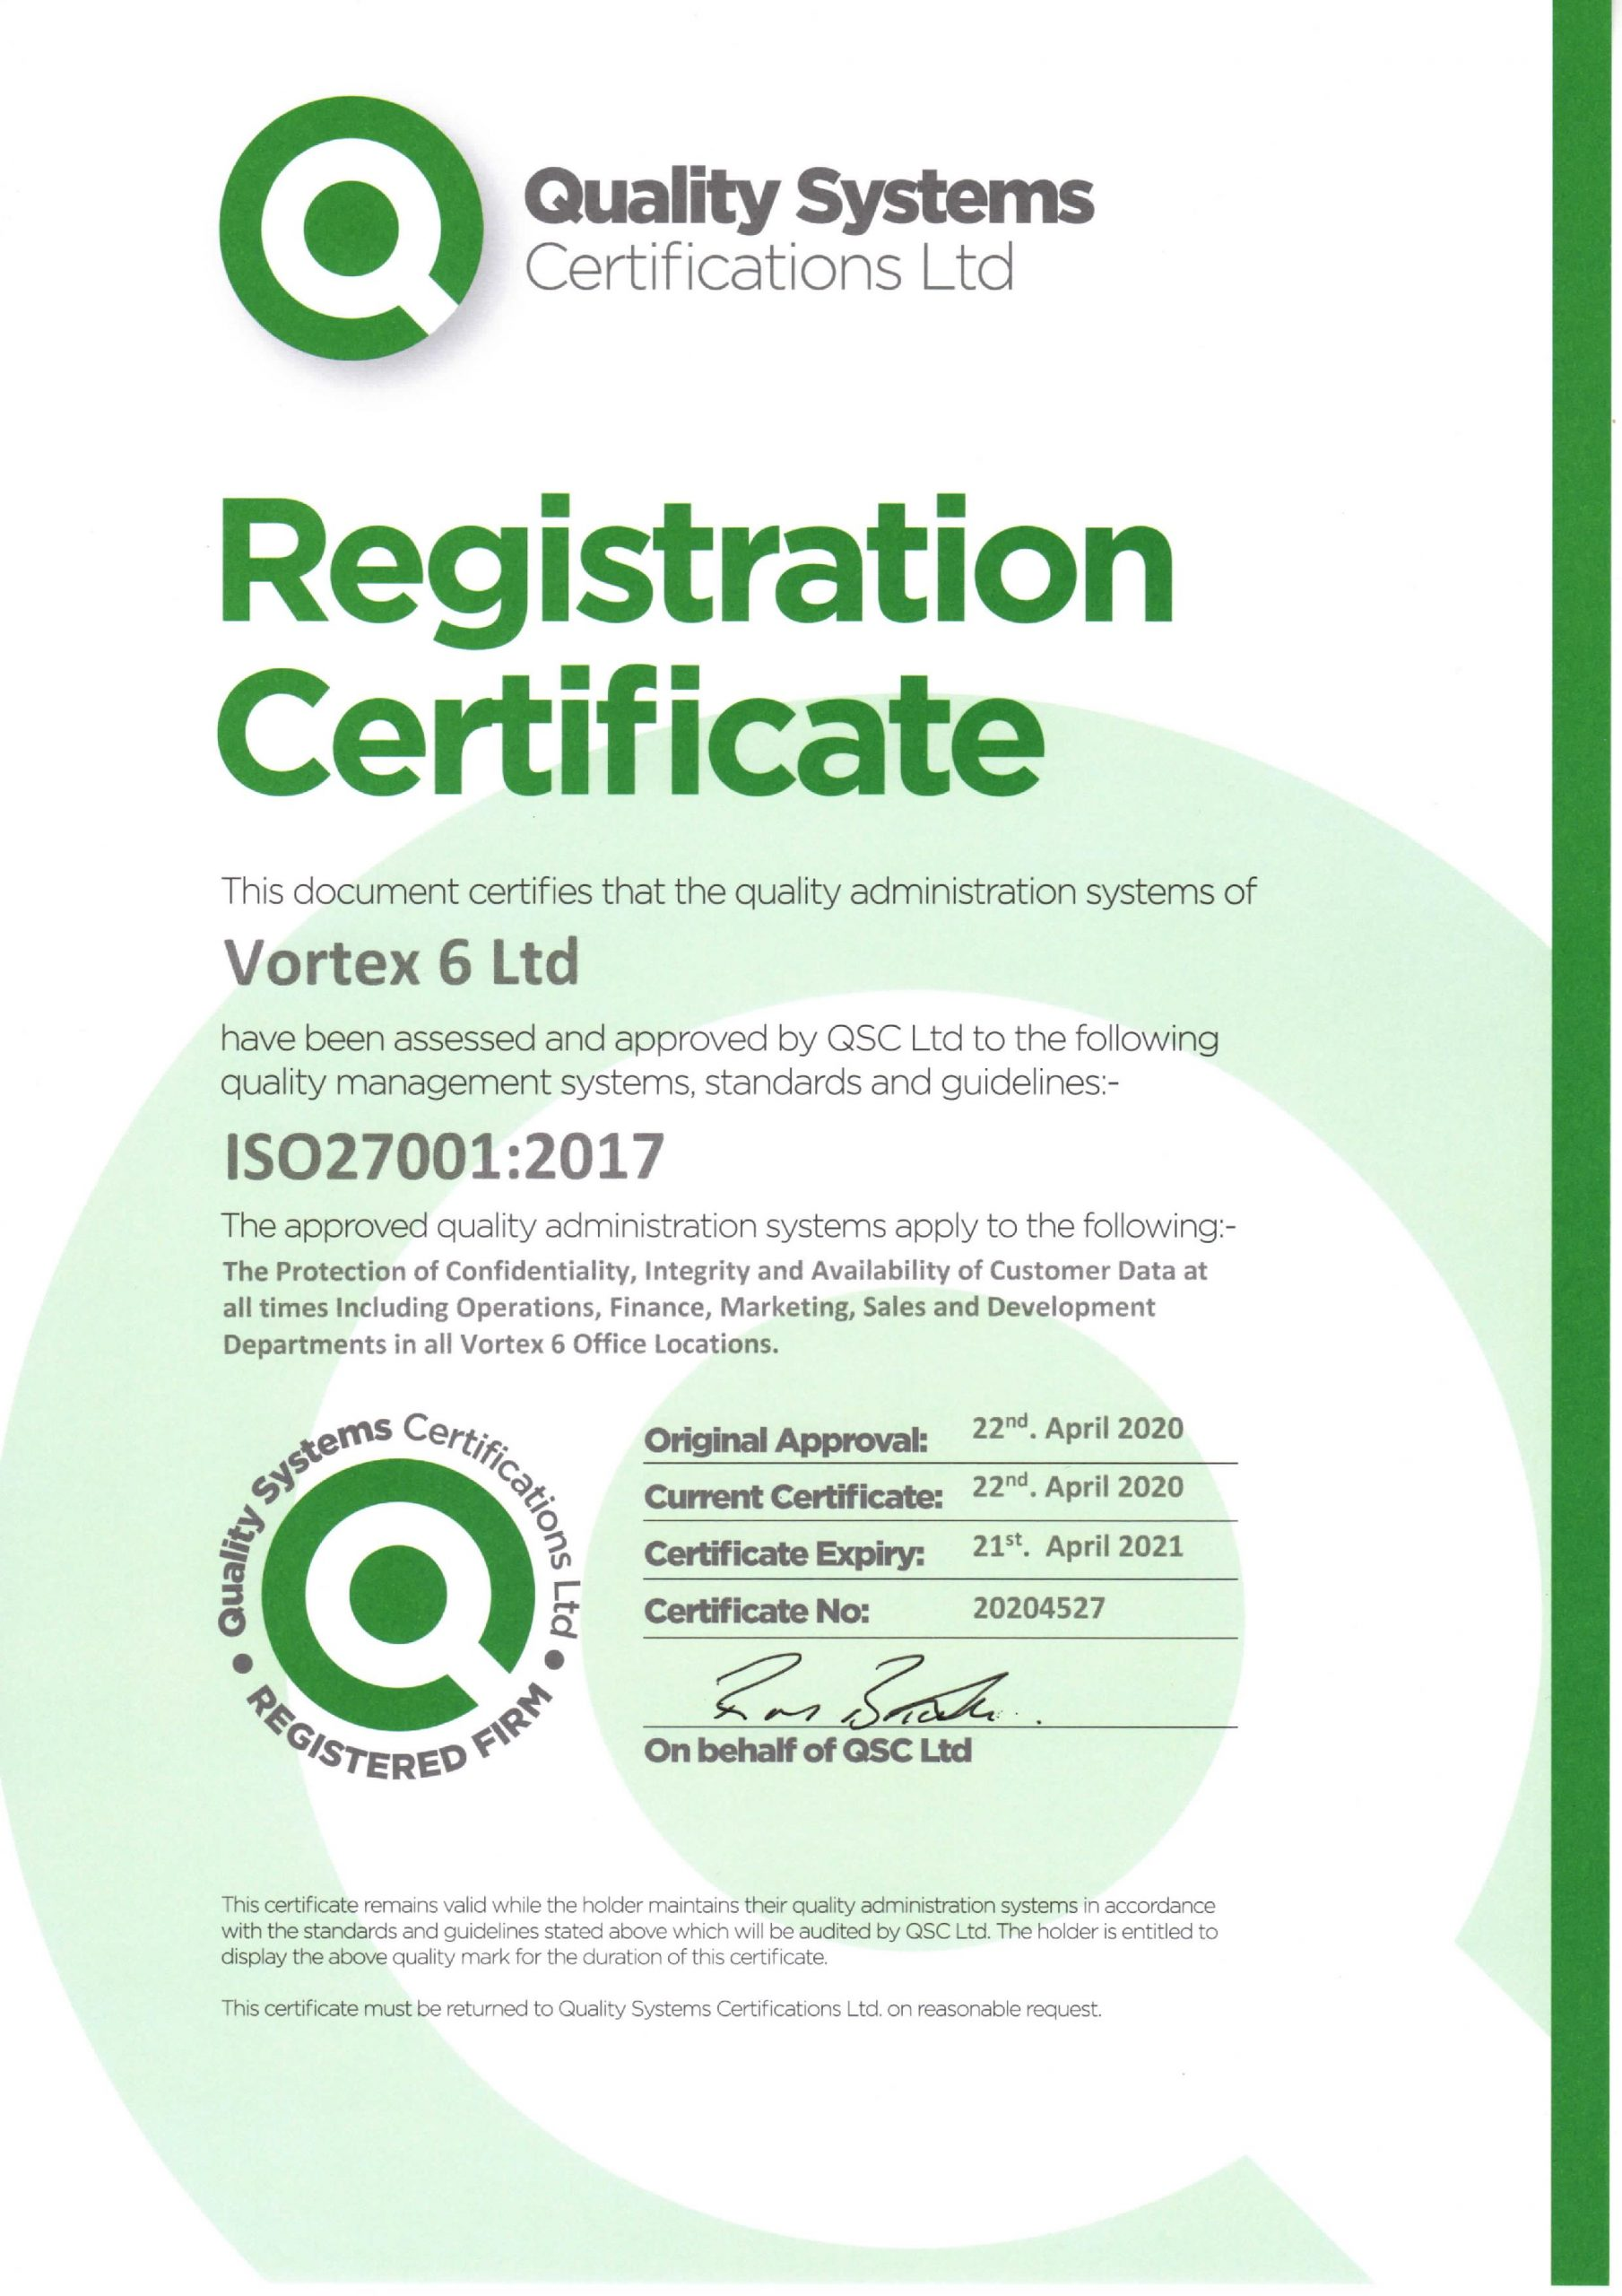 Vortex 6 achieved the ISO 27001: 2017 certification.